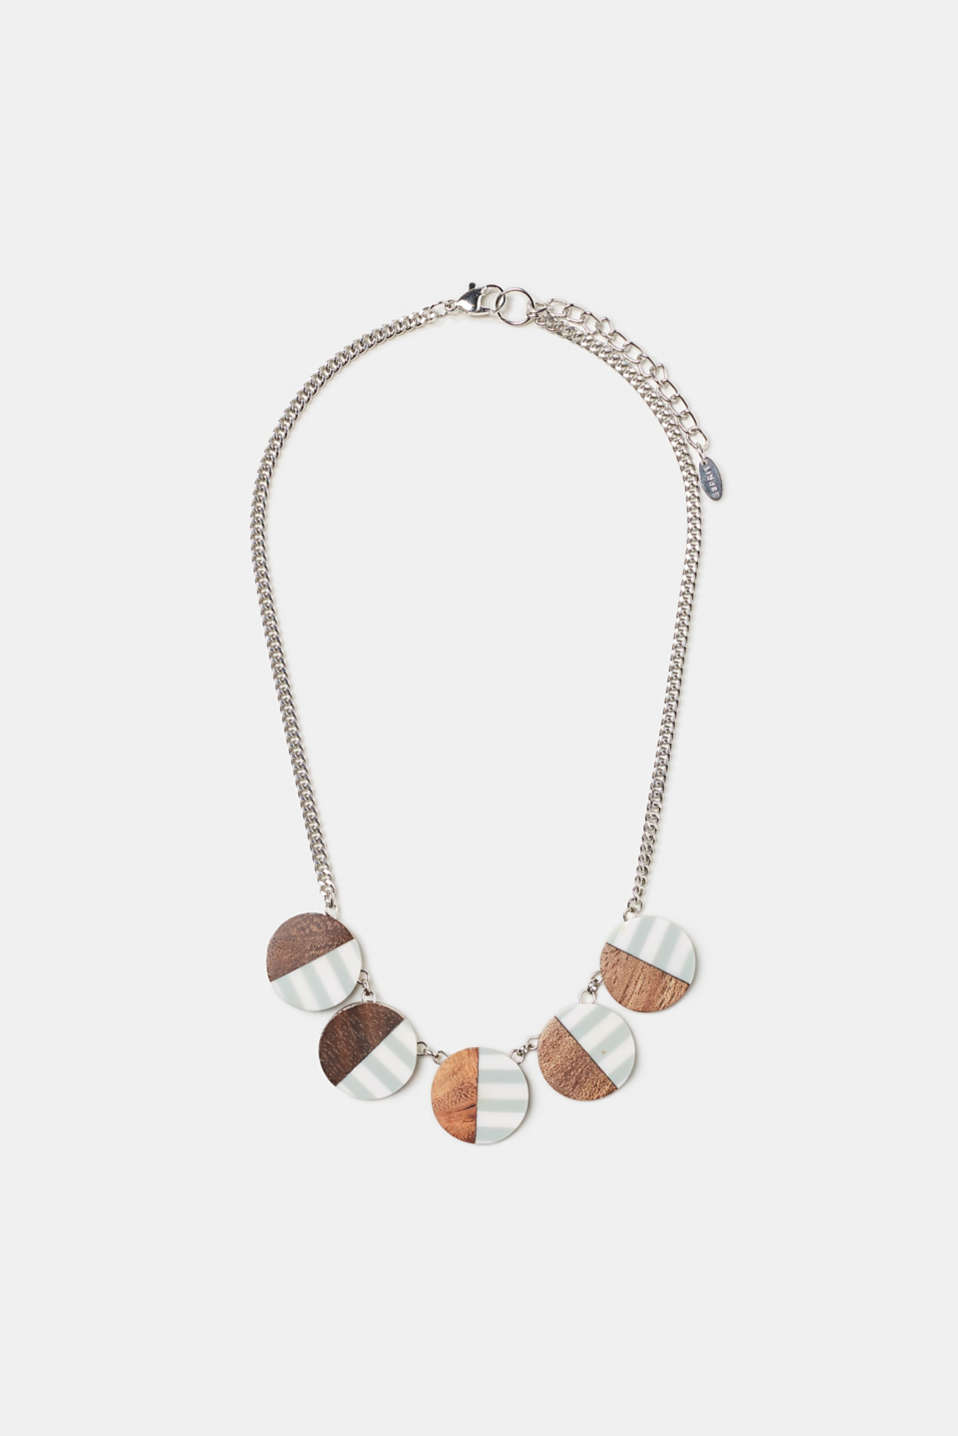 Esprit - Short necklace with pendants